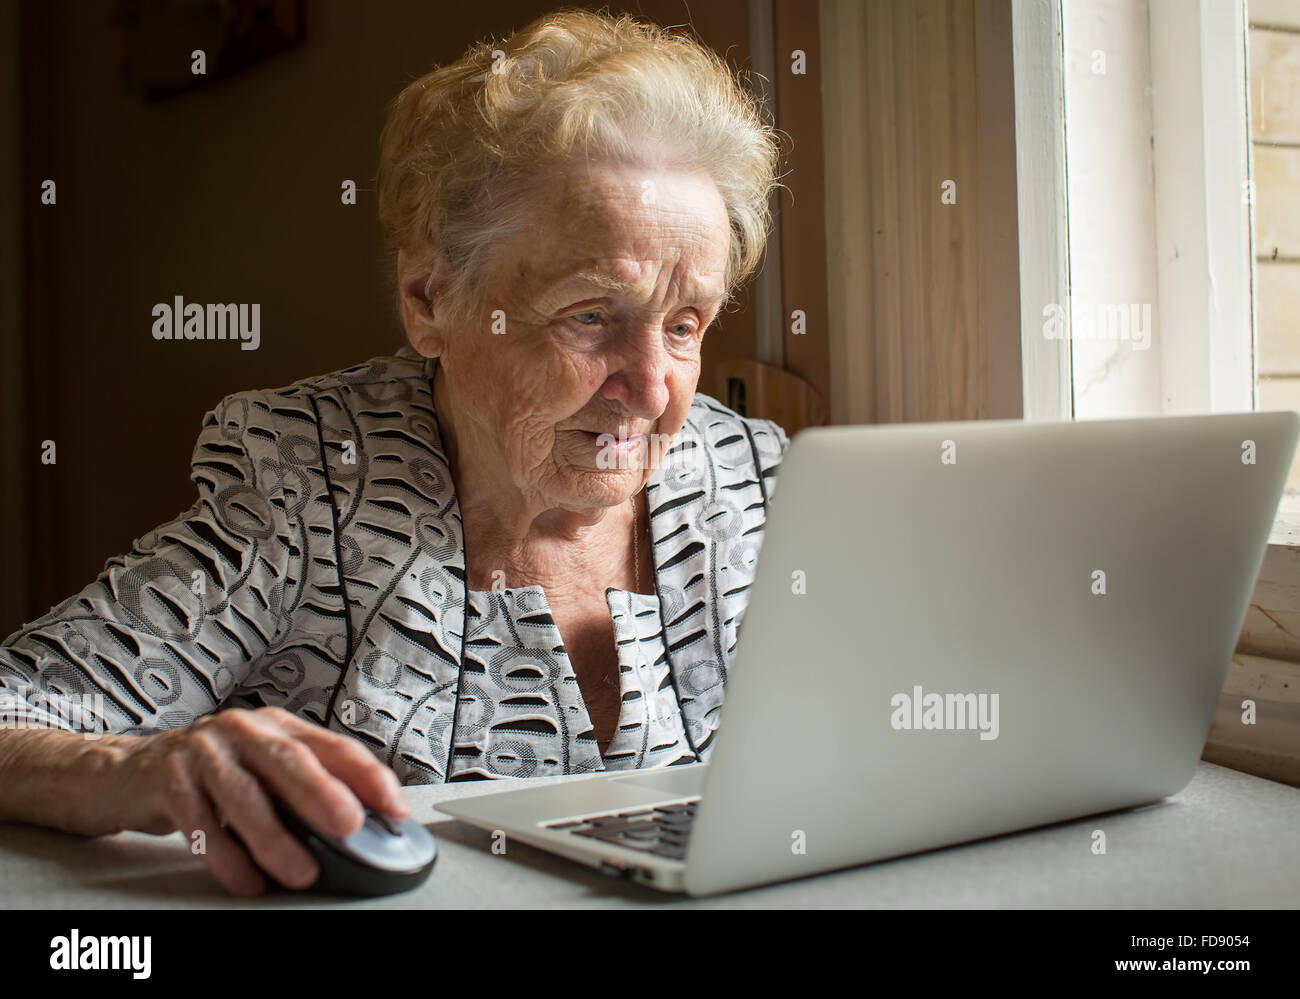 An elderly woman sitting at the table and types on laptop. - Stock Image